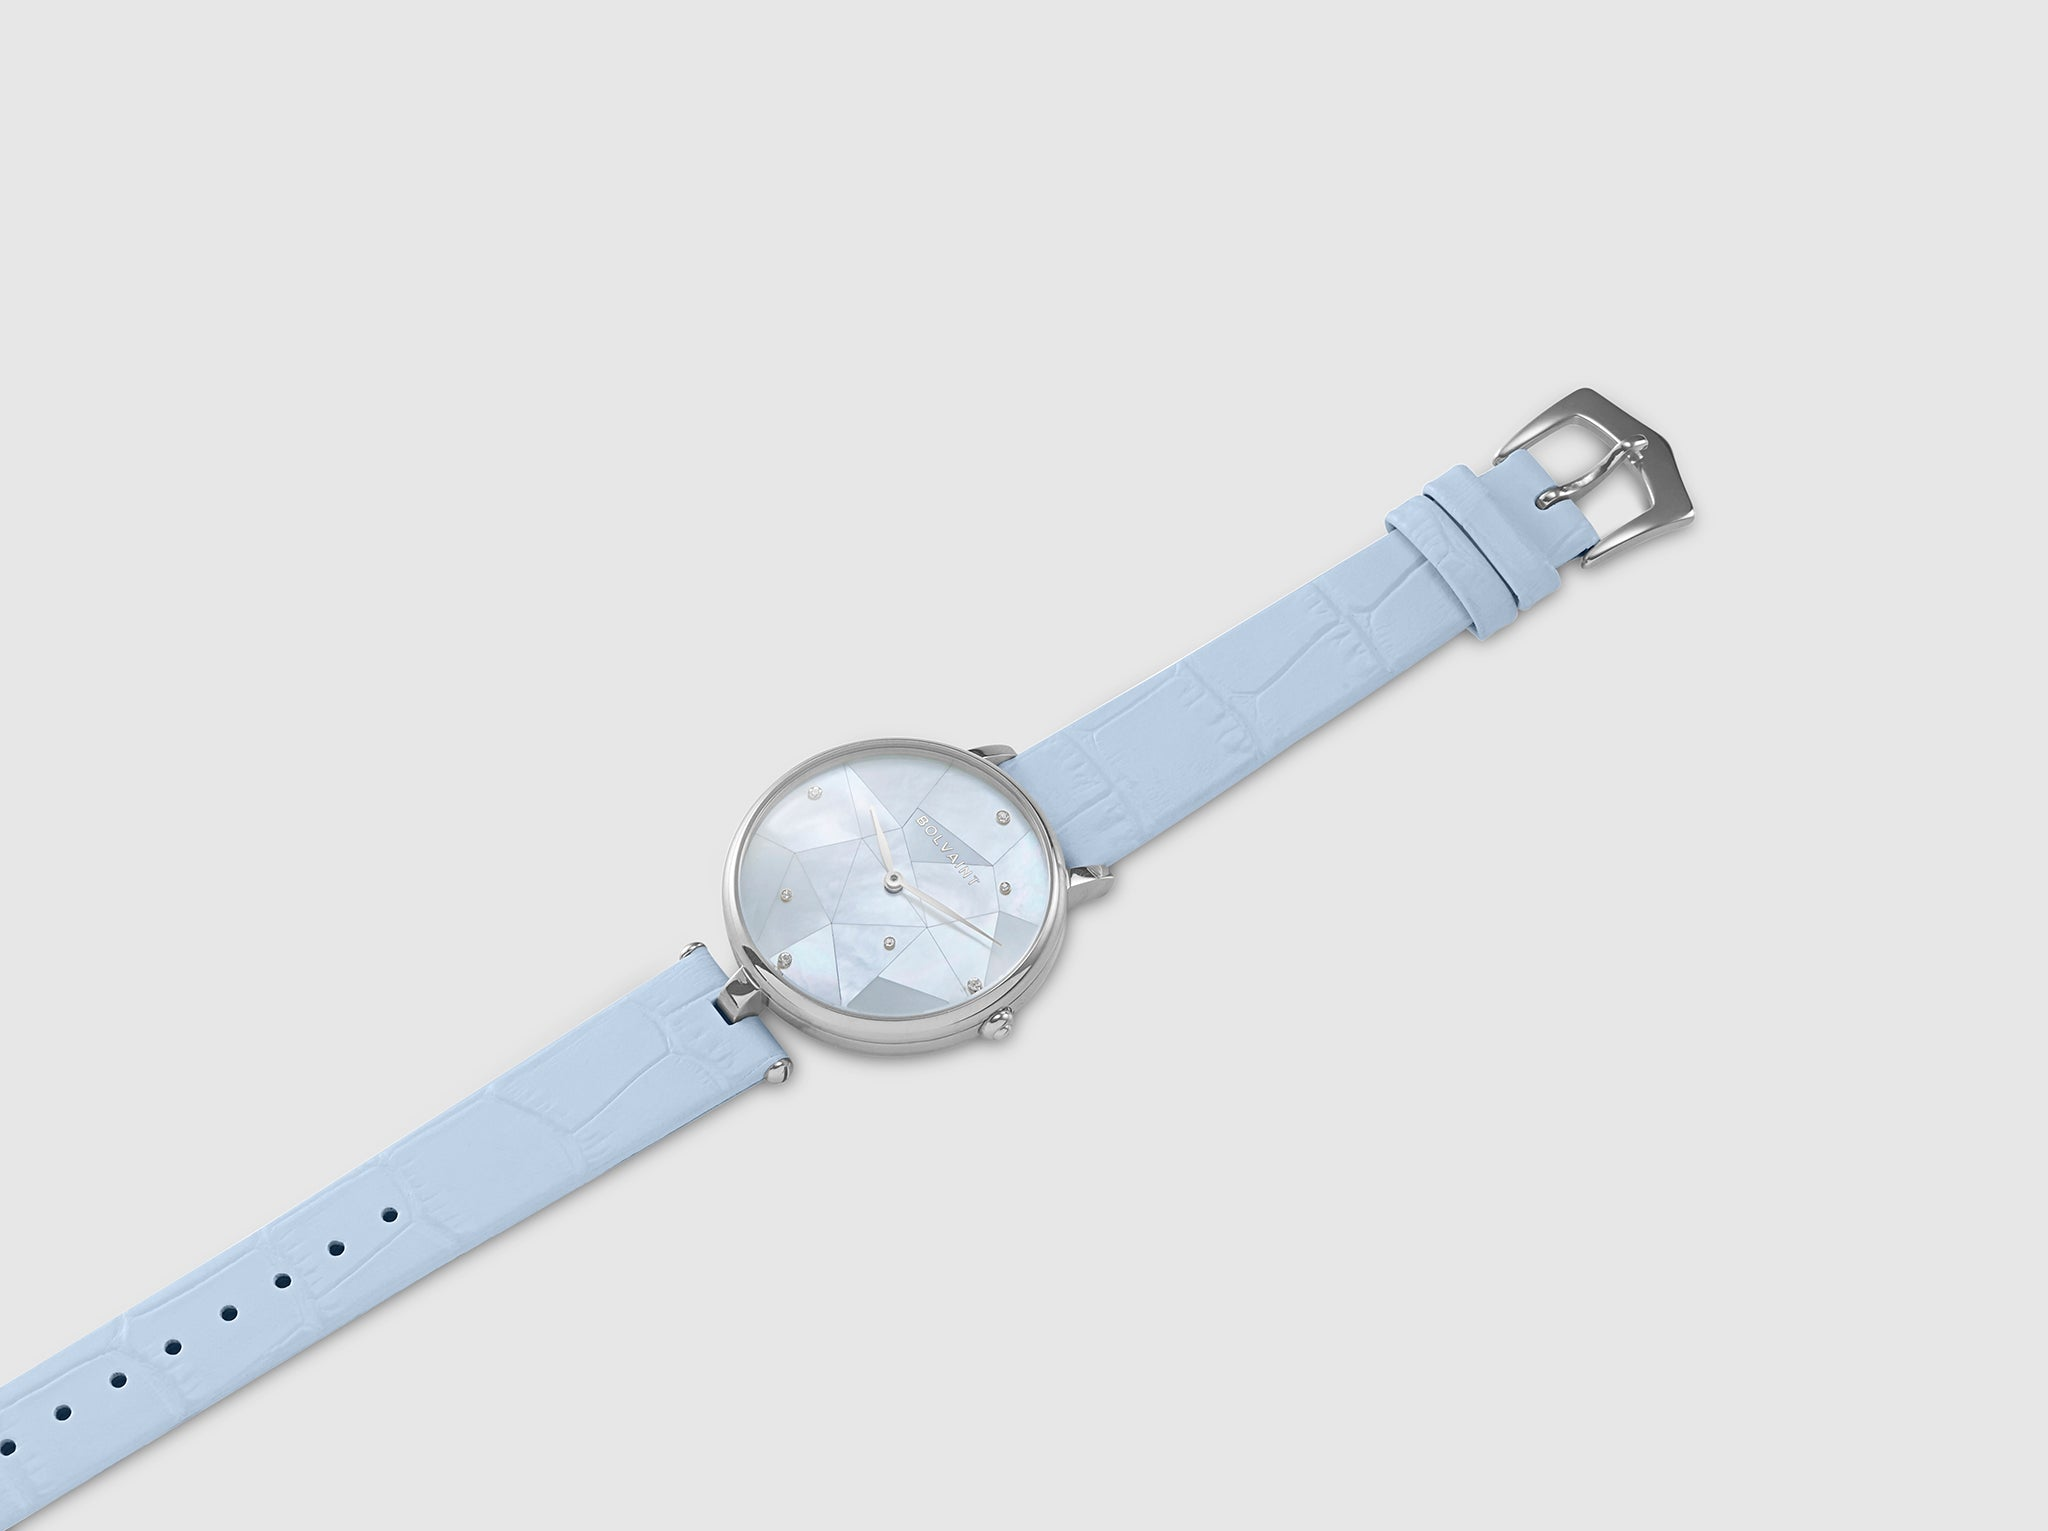 The Bolvaint Vainui Mother-of-Pearl Ladies' Watch – Silver & Apataki